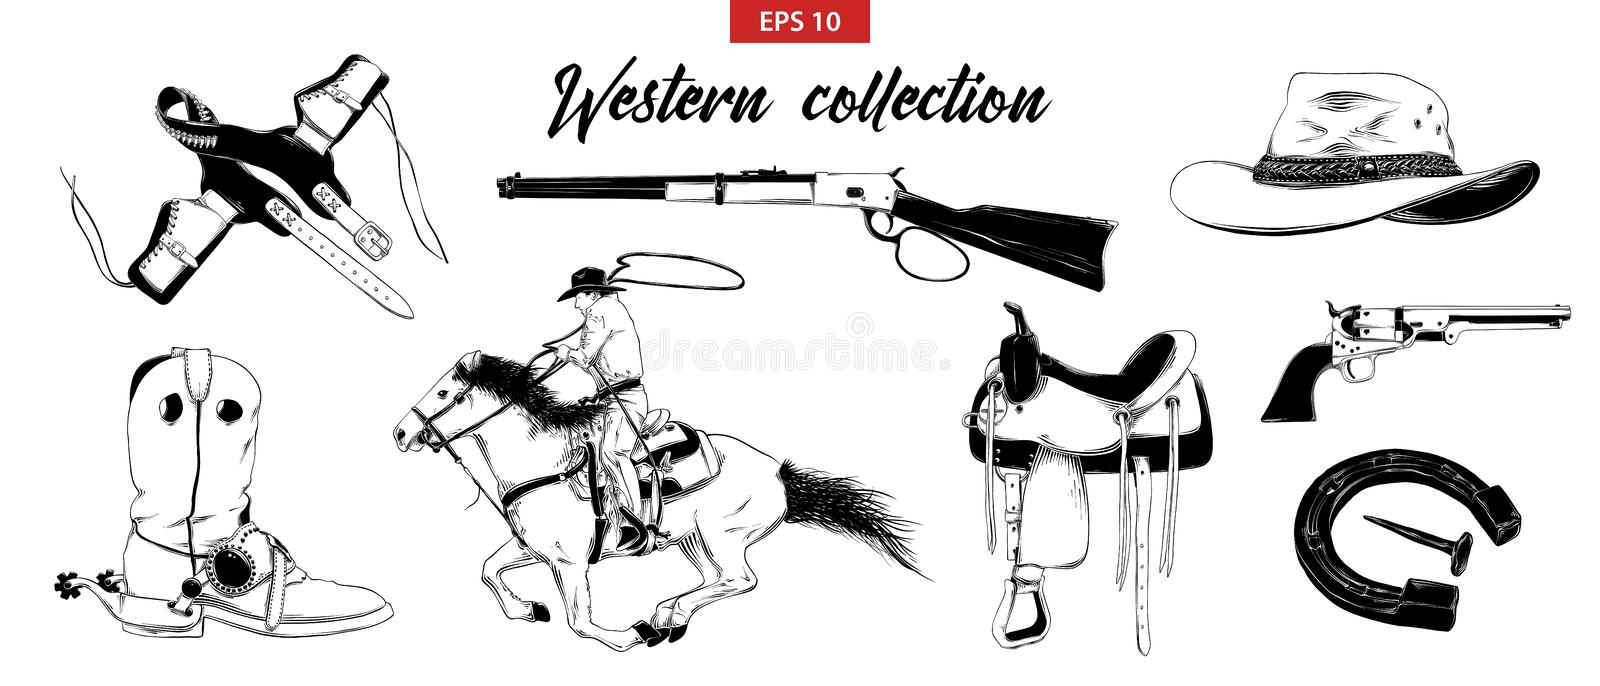 Hand drawn sketch set of western cowboy elements isolated on white background. Detailed vintage etching drawing. royalty free illustration